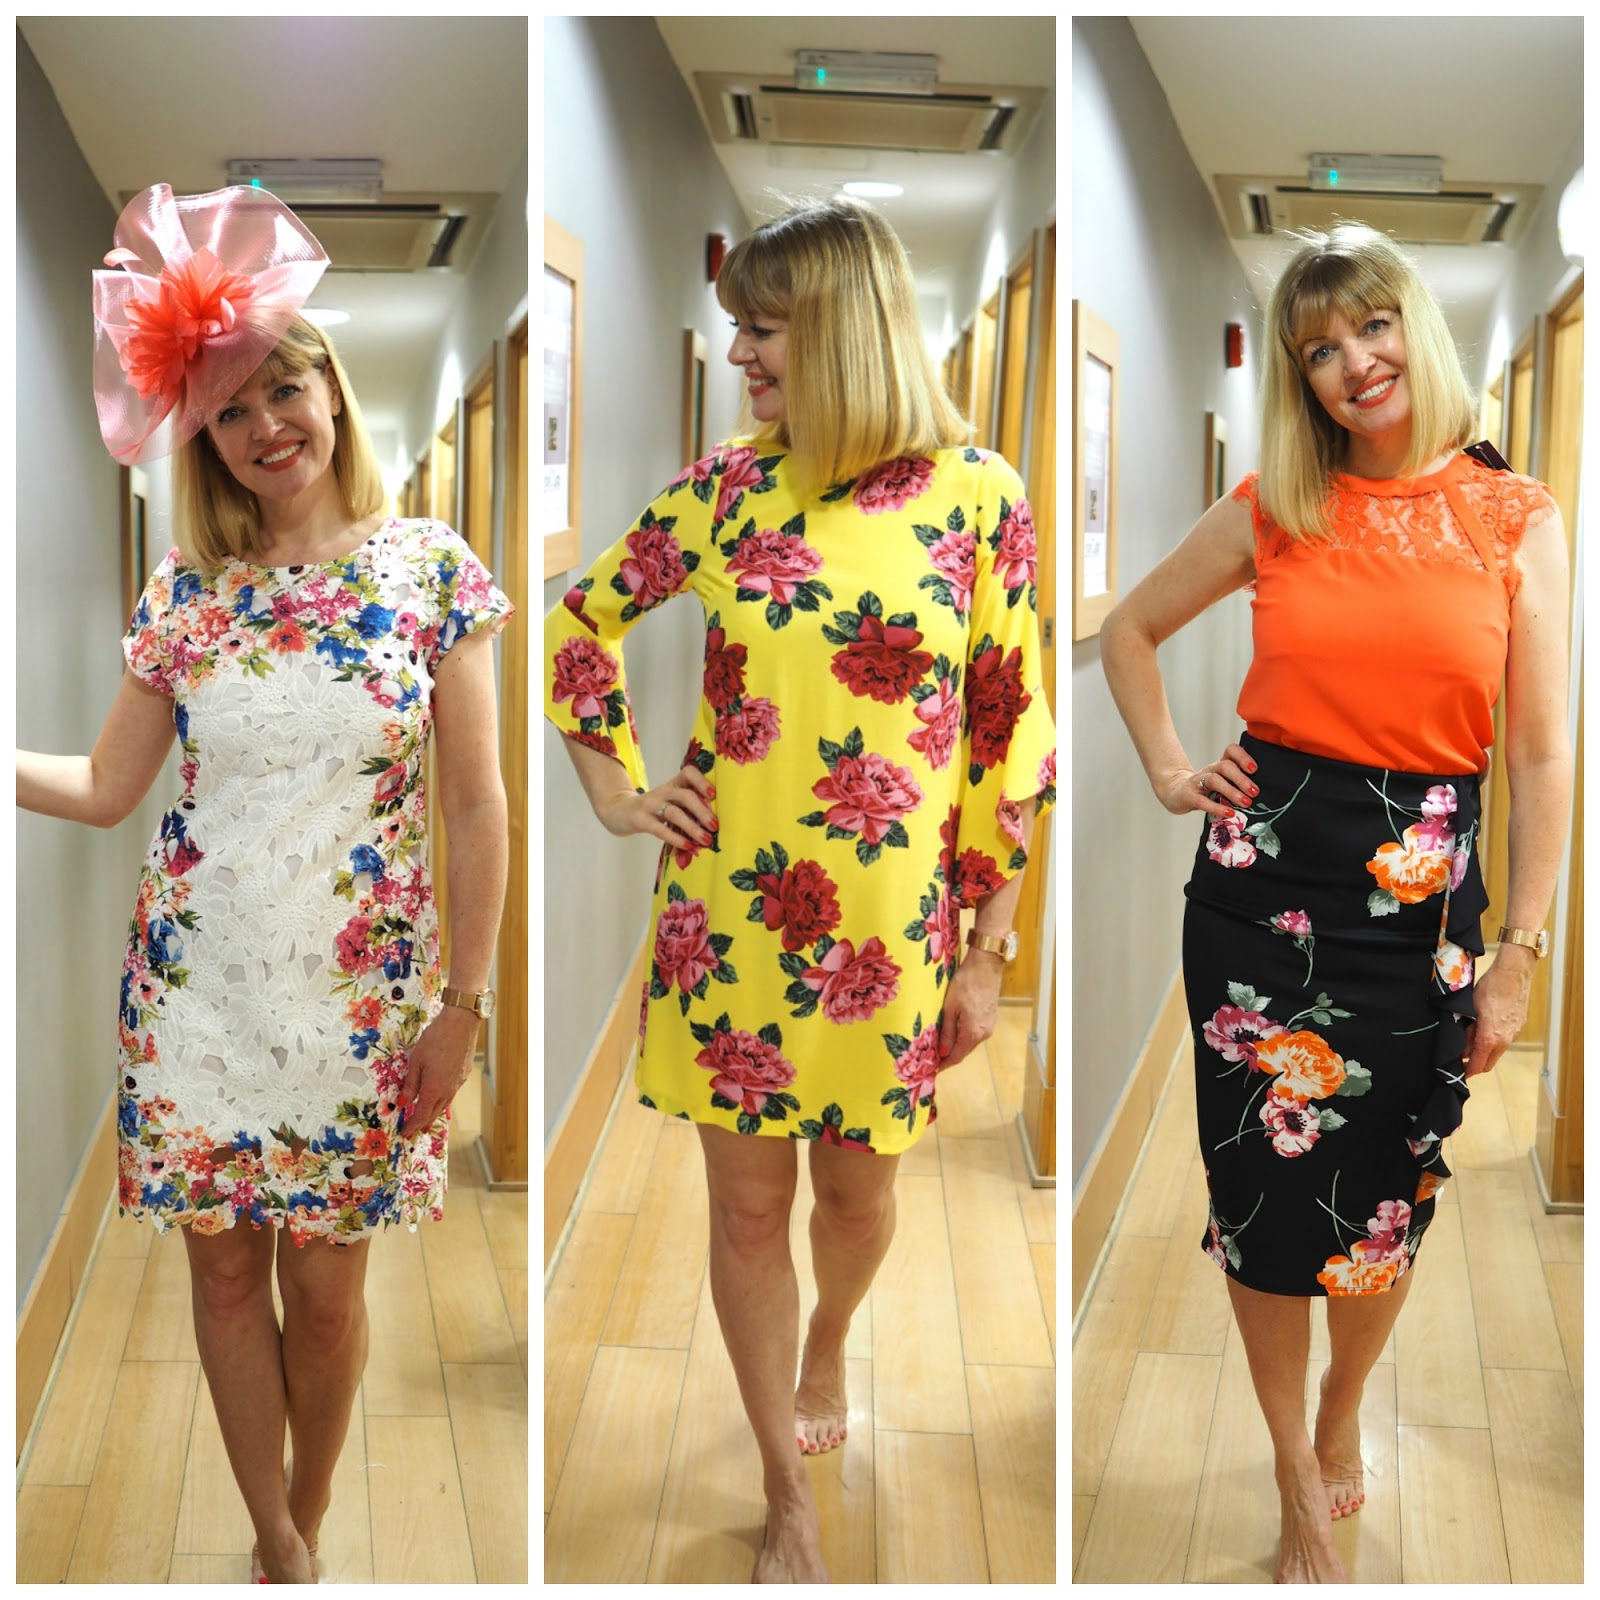 What to wear for York Races, Outfit Floral dresses, coral orange fascinator over 40